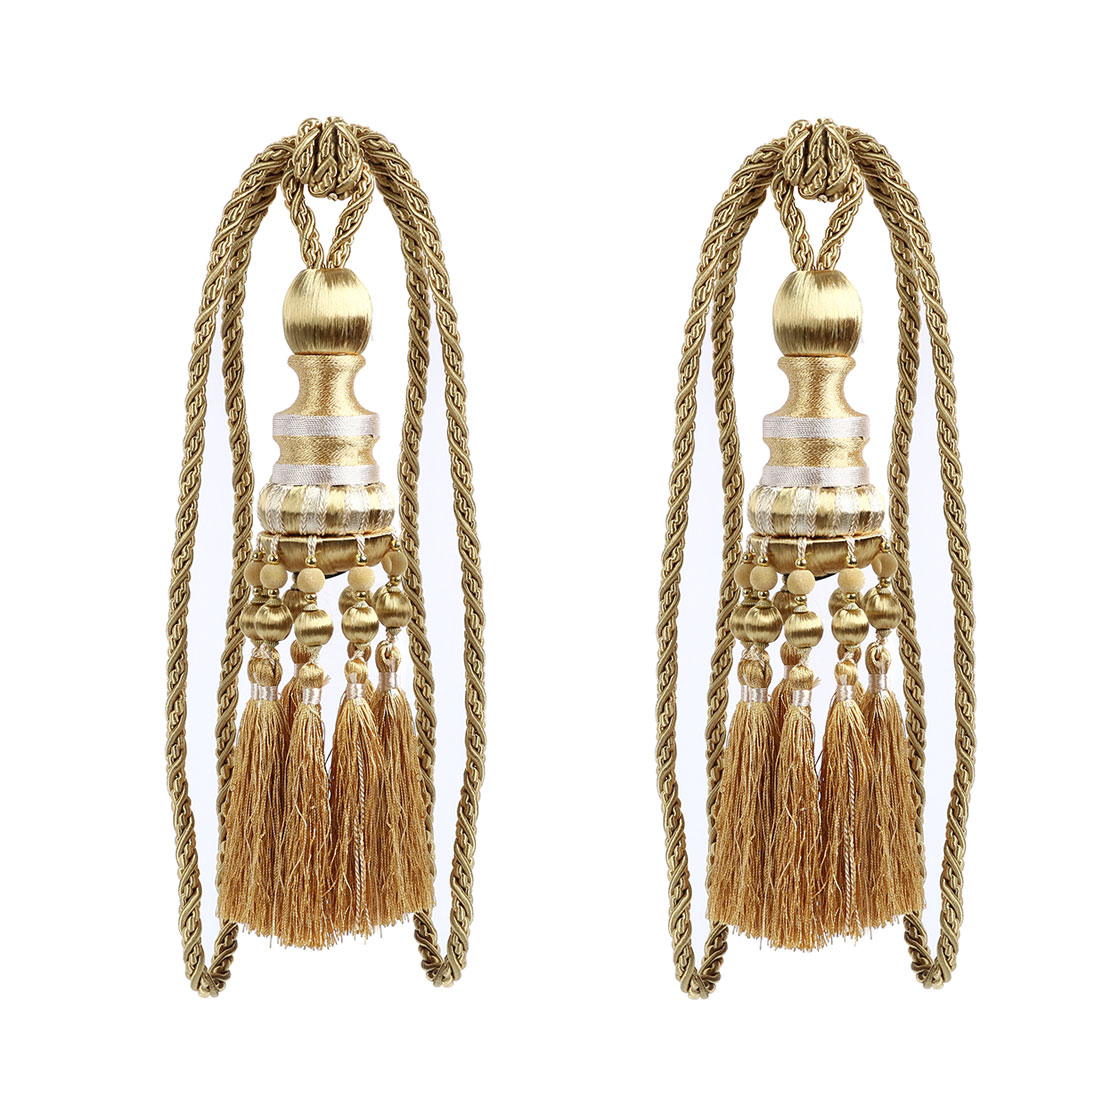 2Pcs Beaded Window Curtain Tassel Fringe Tieback Tie Back Home Decor Gold Tone